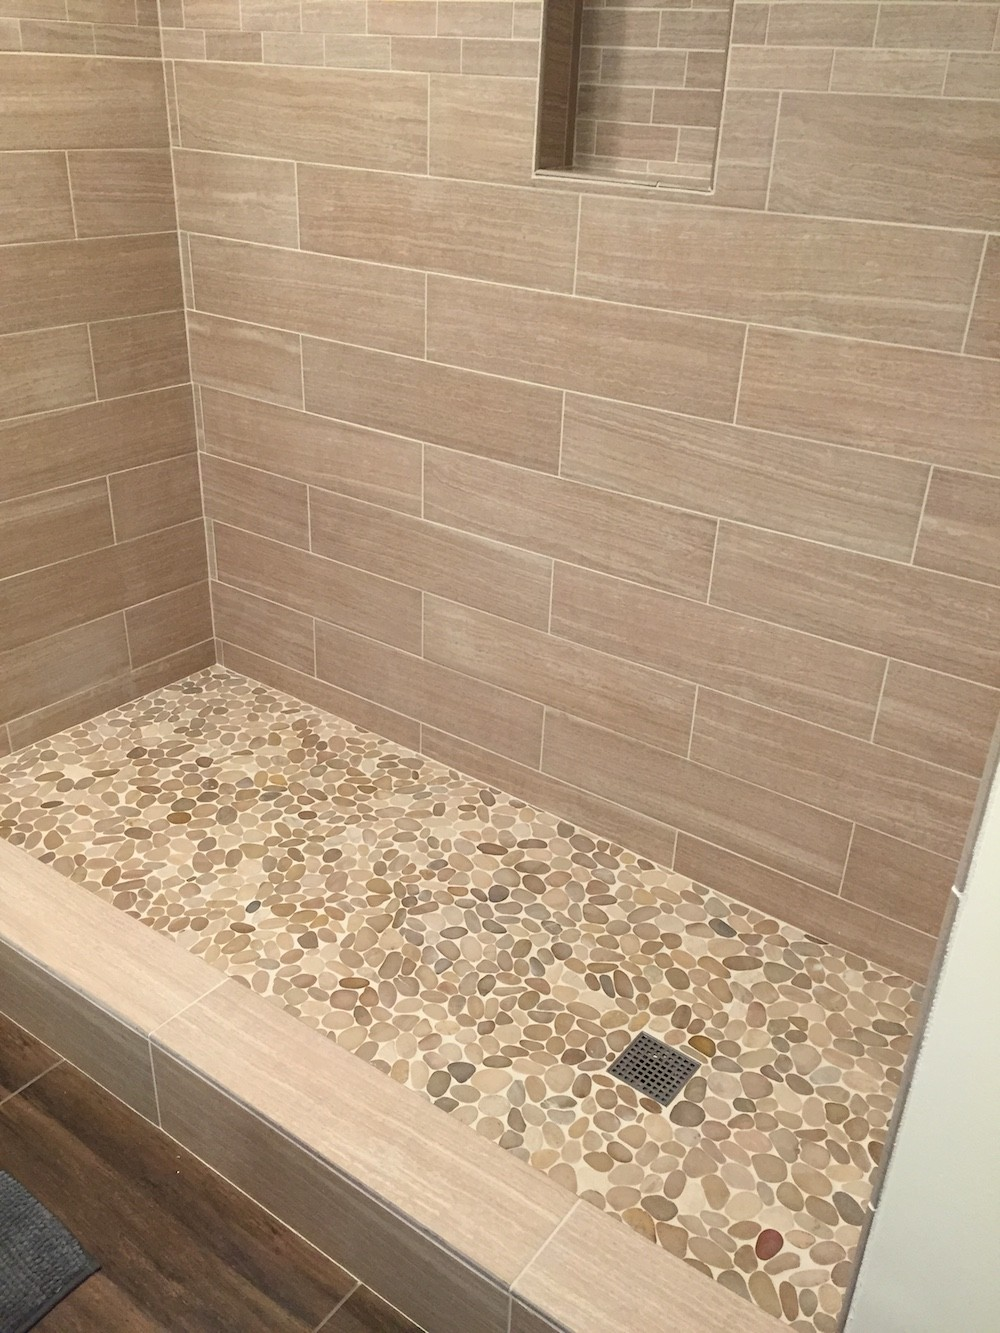 How Much Does It Cost To Install Ceramic Tile